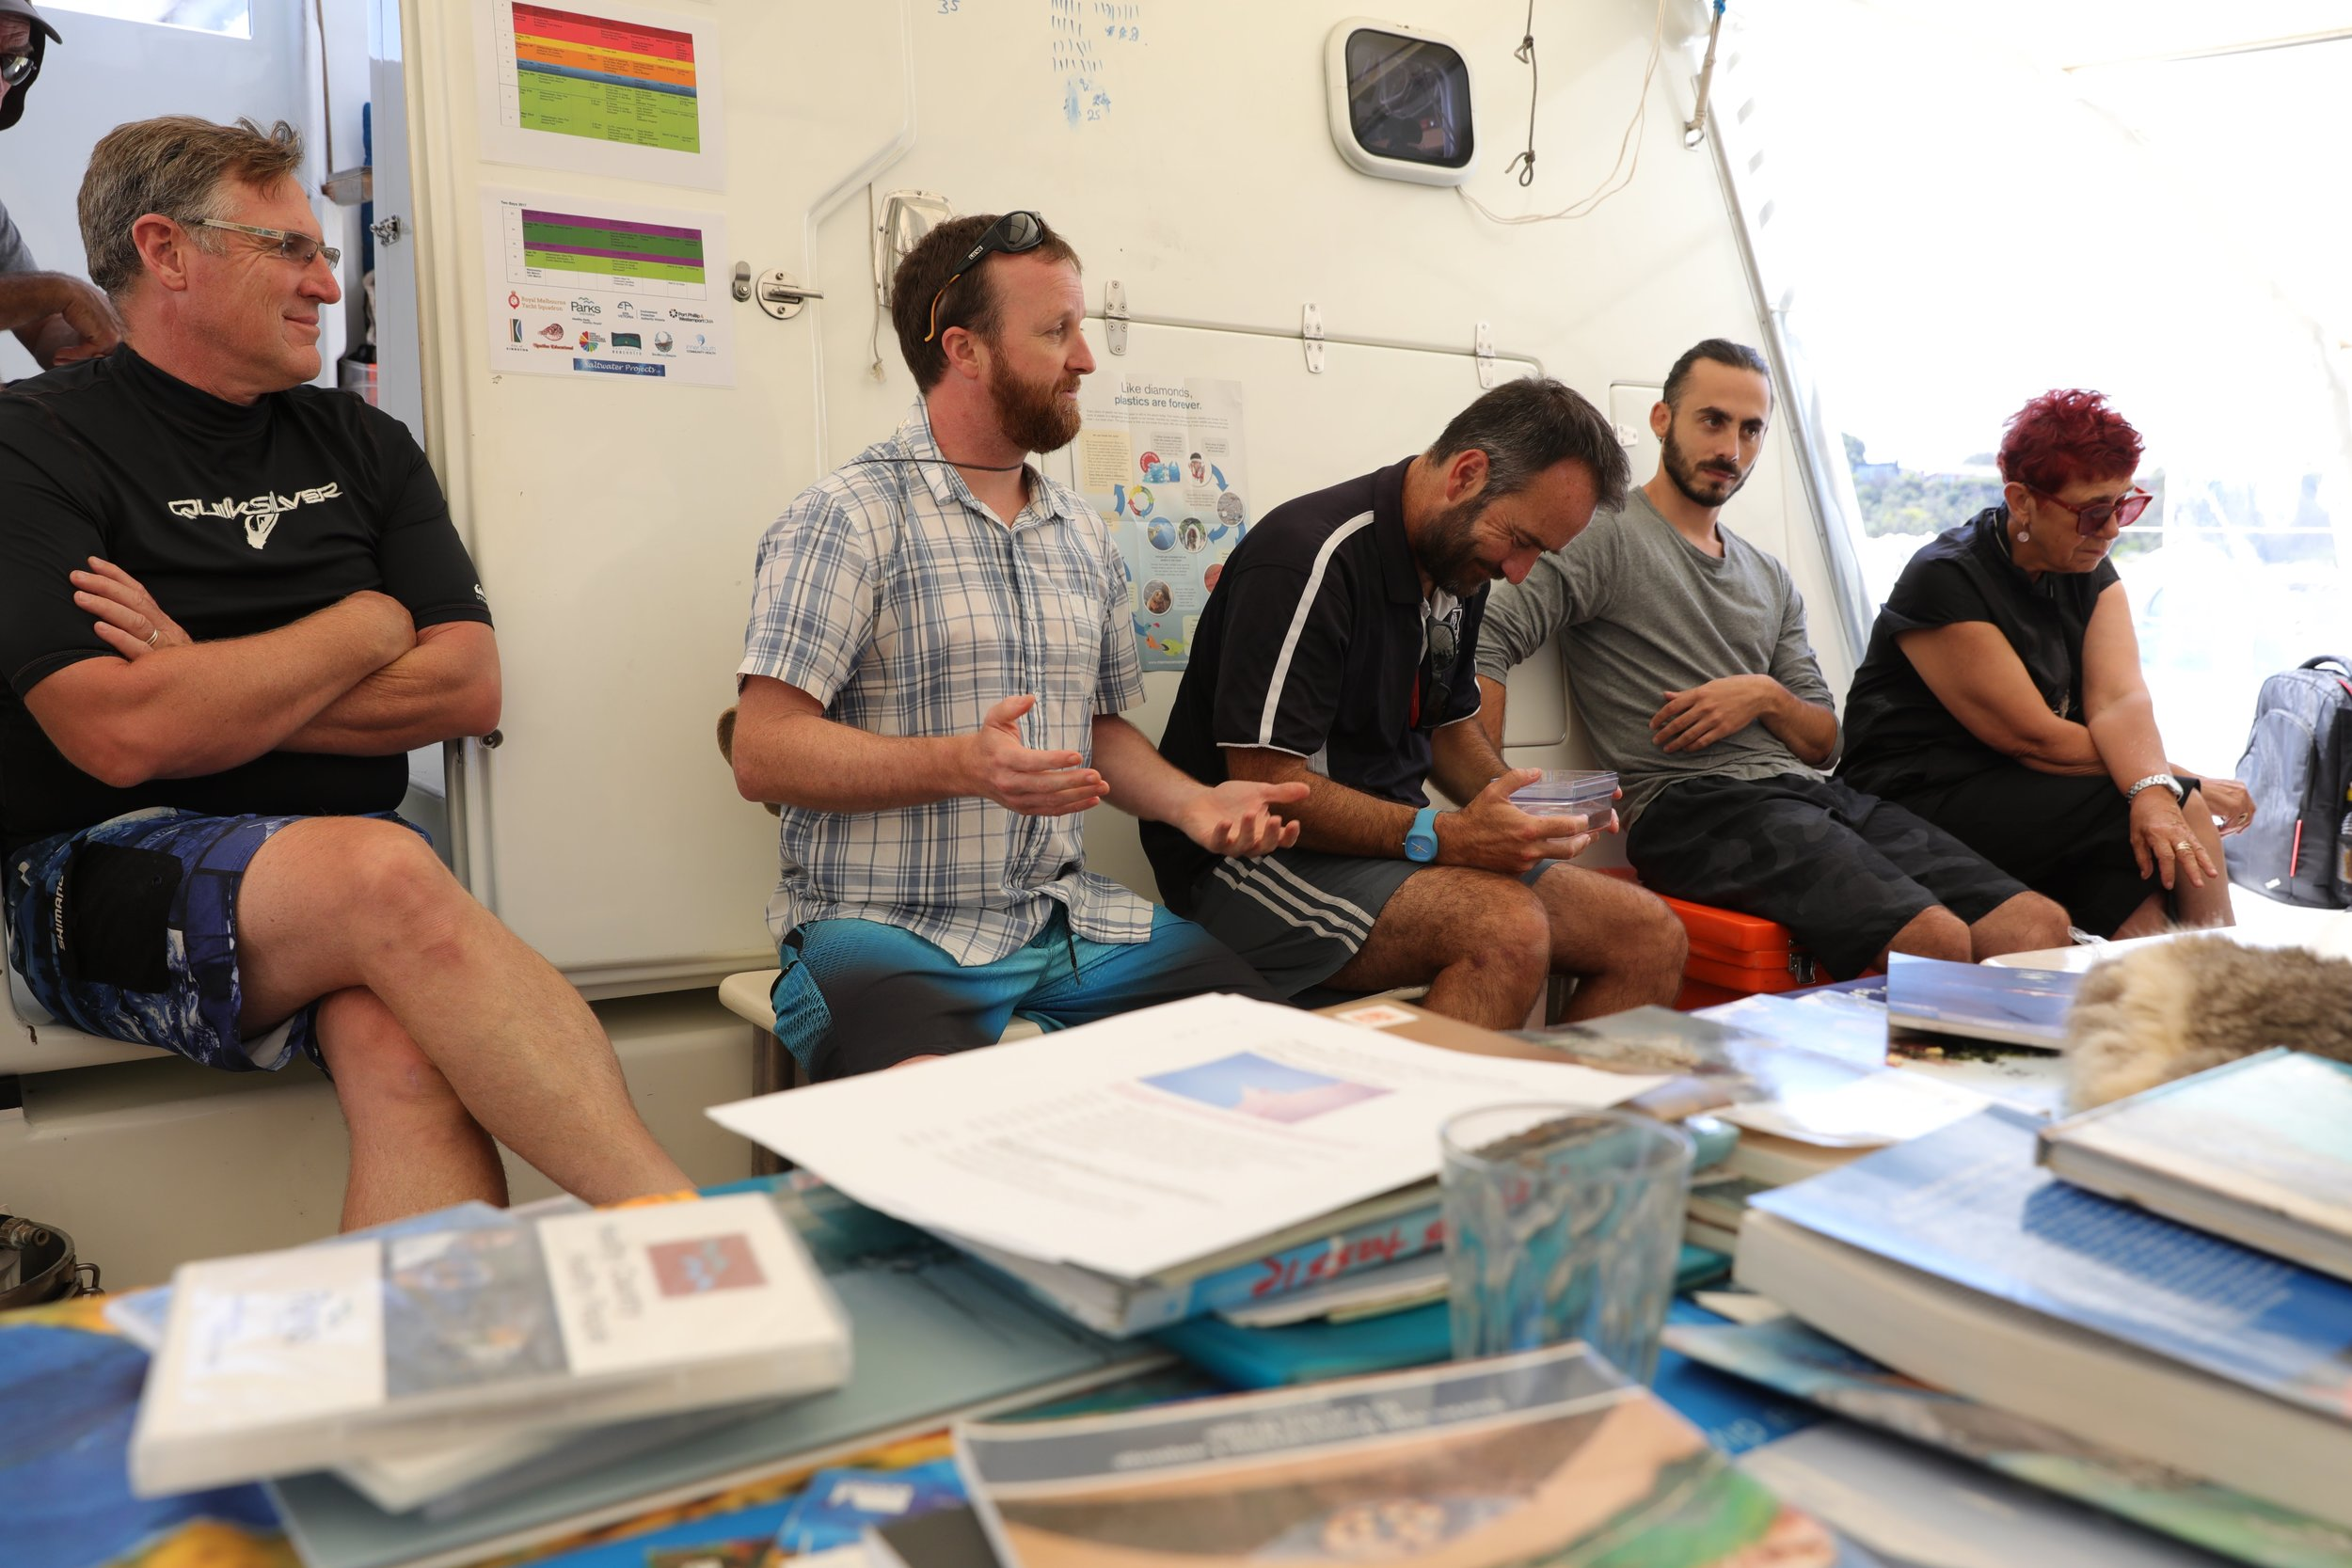 Simon sharing the Reef restoration project on board Pelican1.